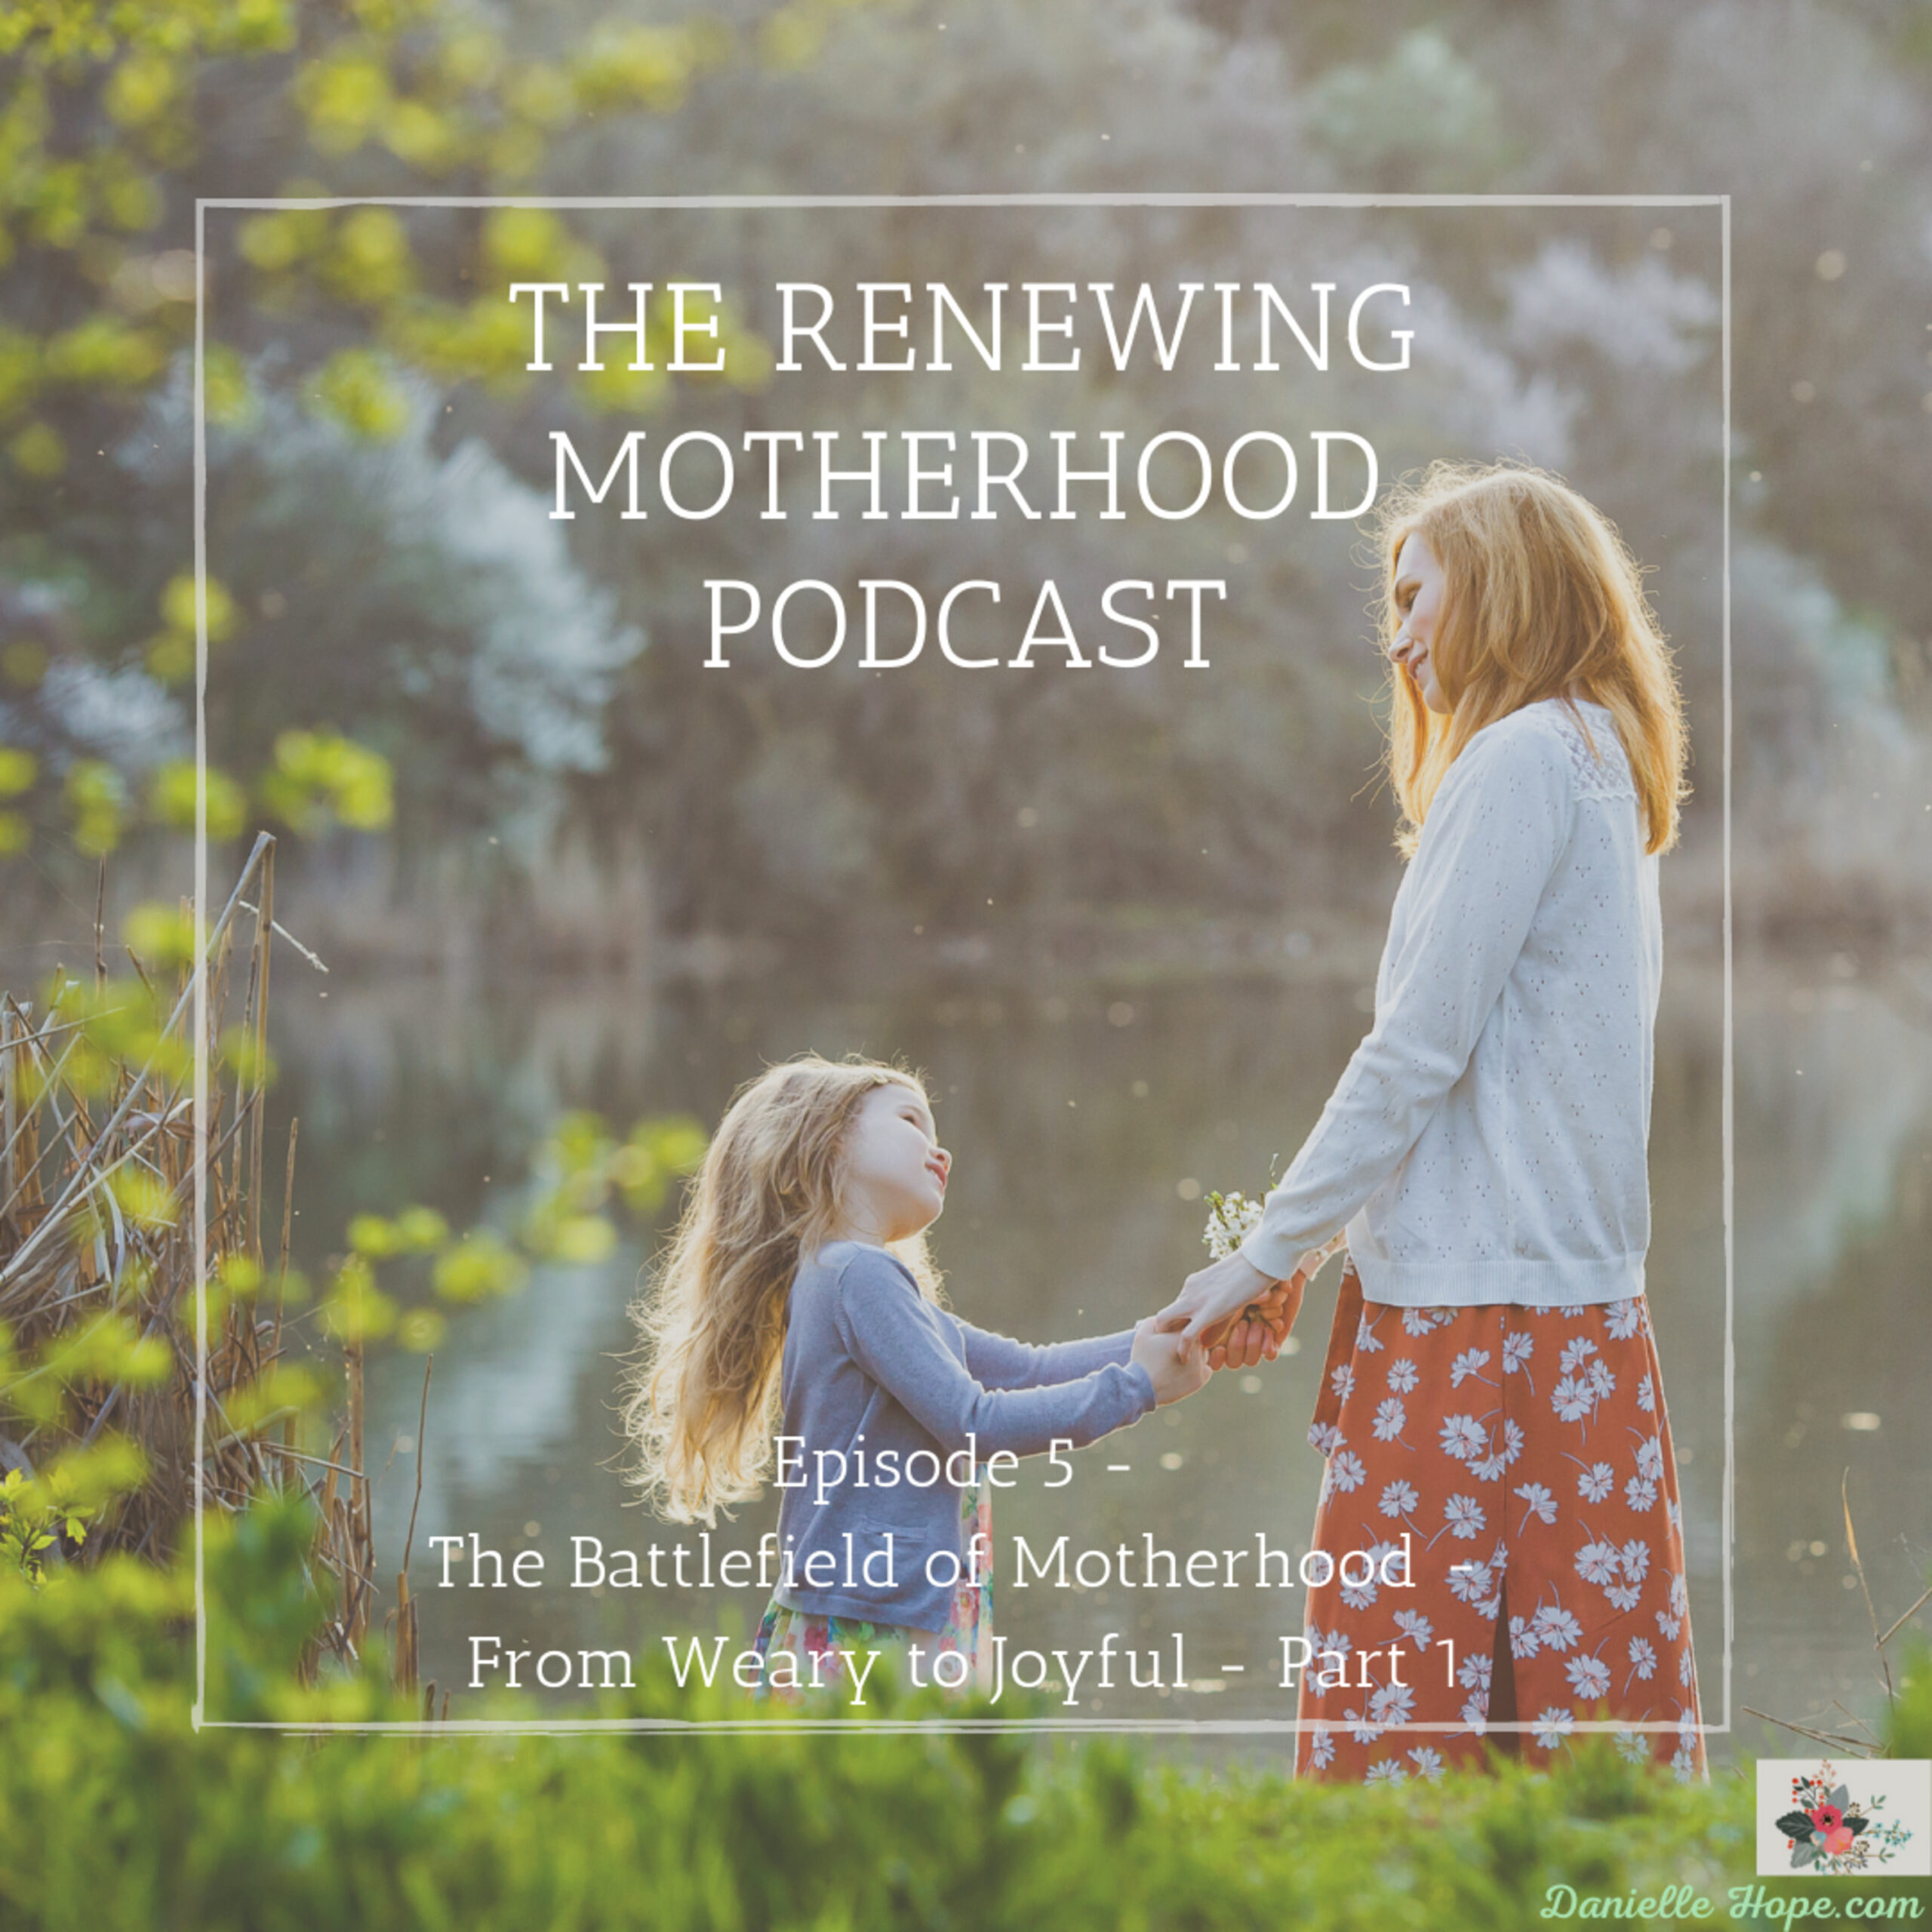 Episode 5 – Pressing On From Weary to Joyful – Part 1